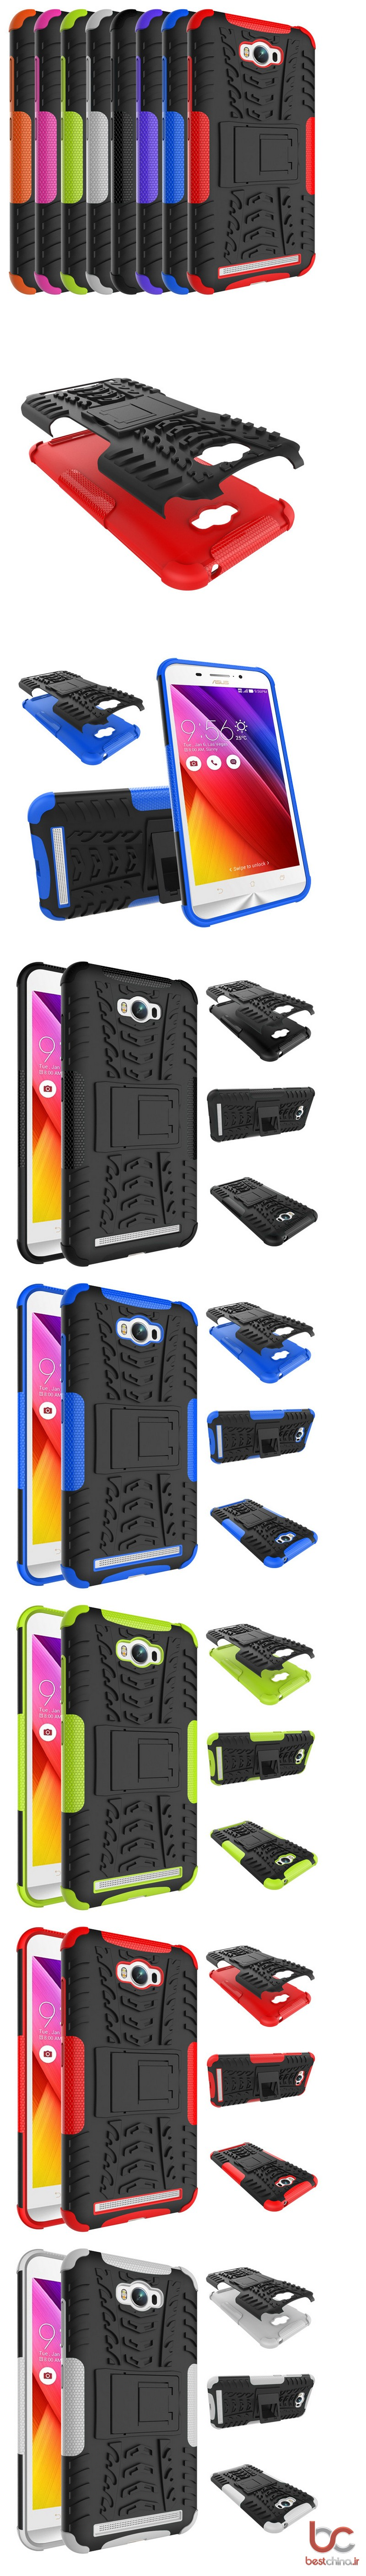 Asus ZenFone Max ZC550KL Armor Back Cover (1)